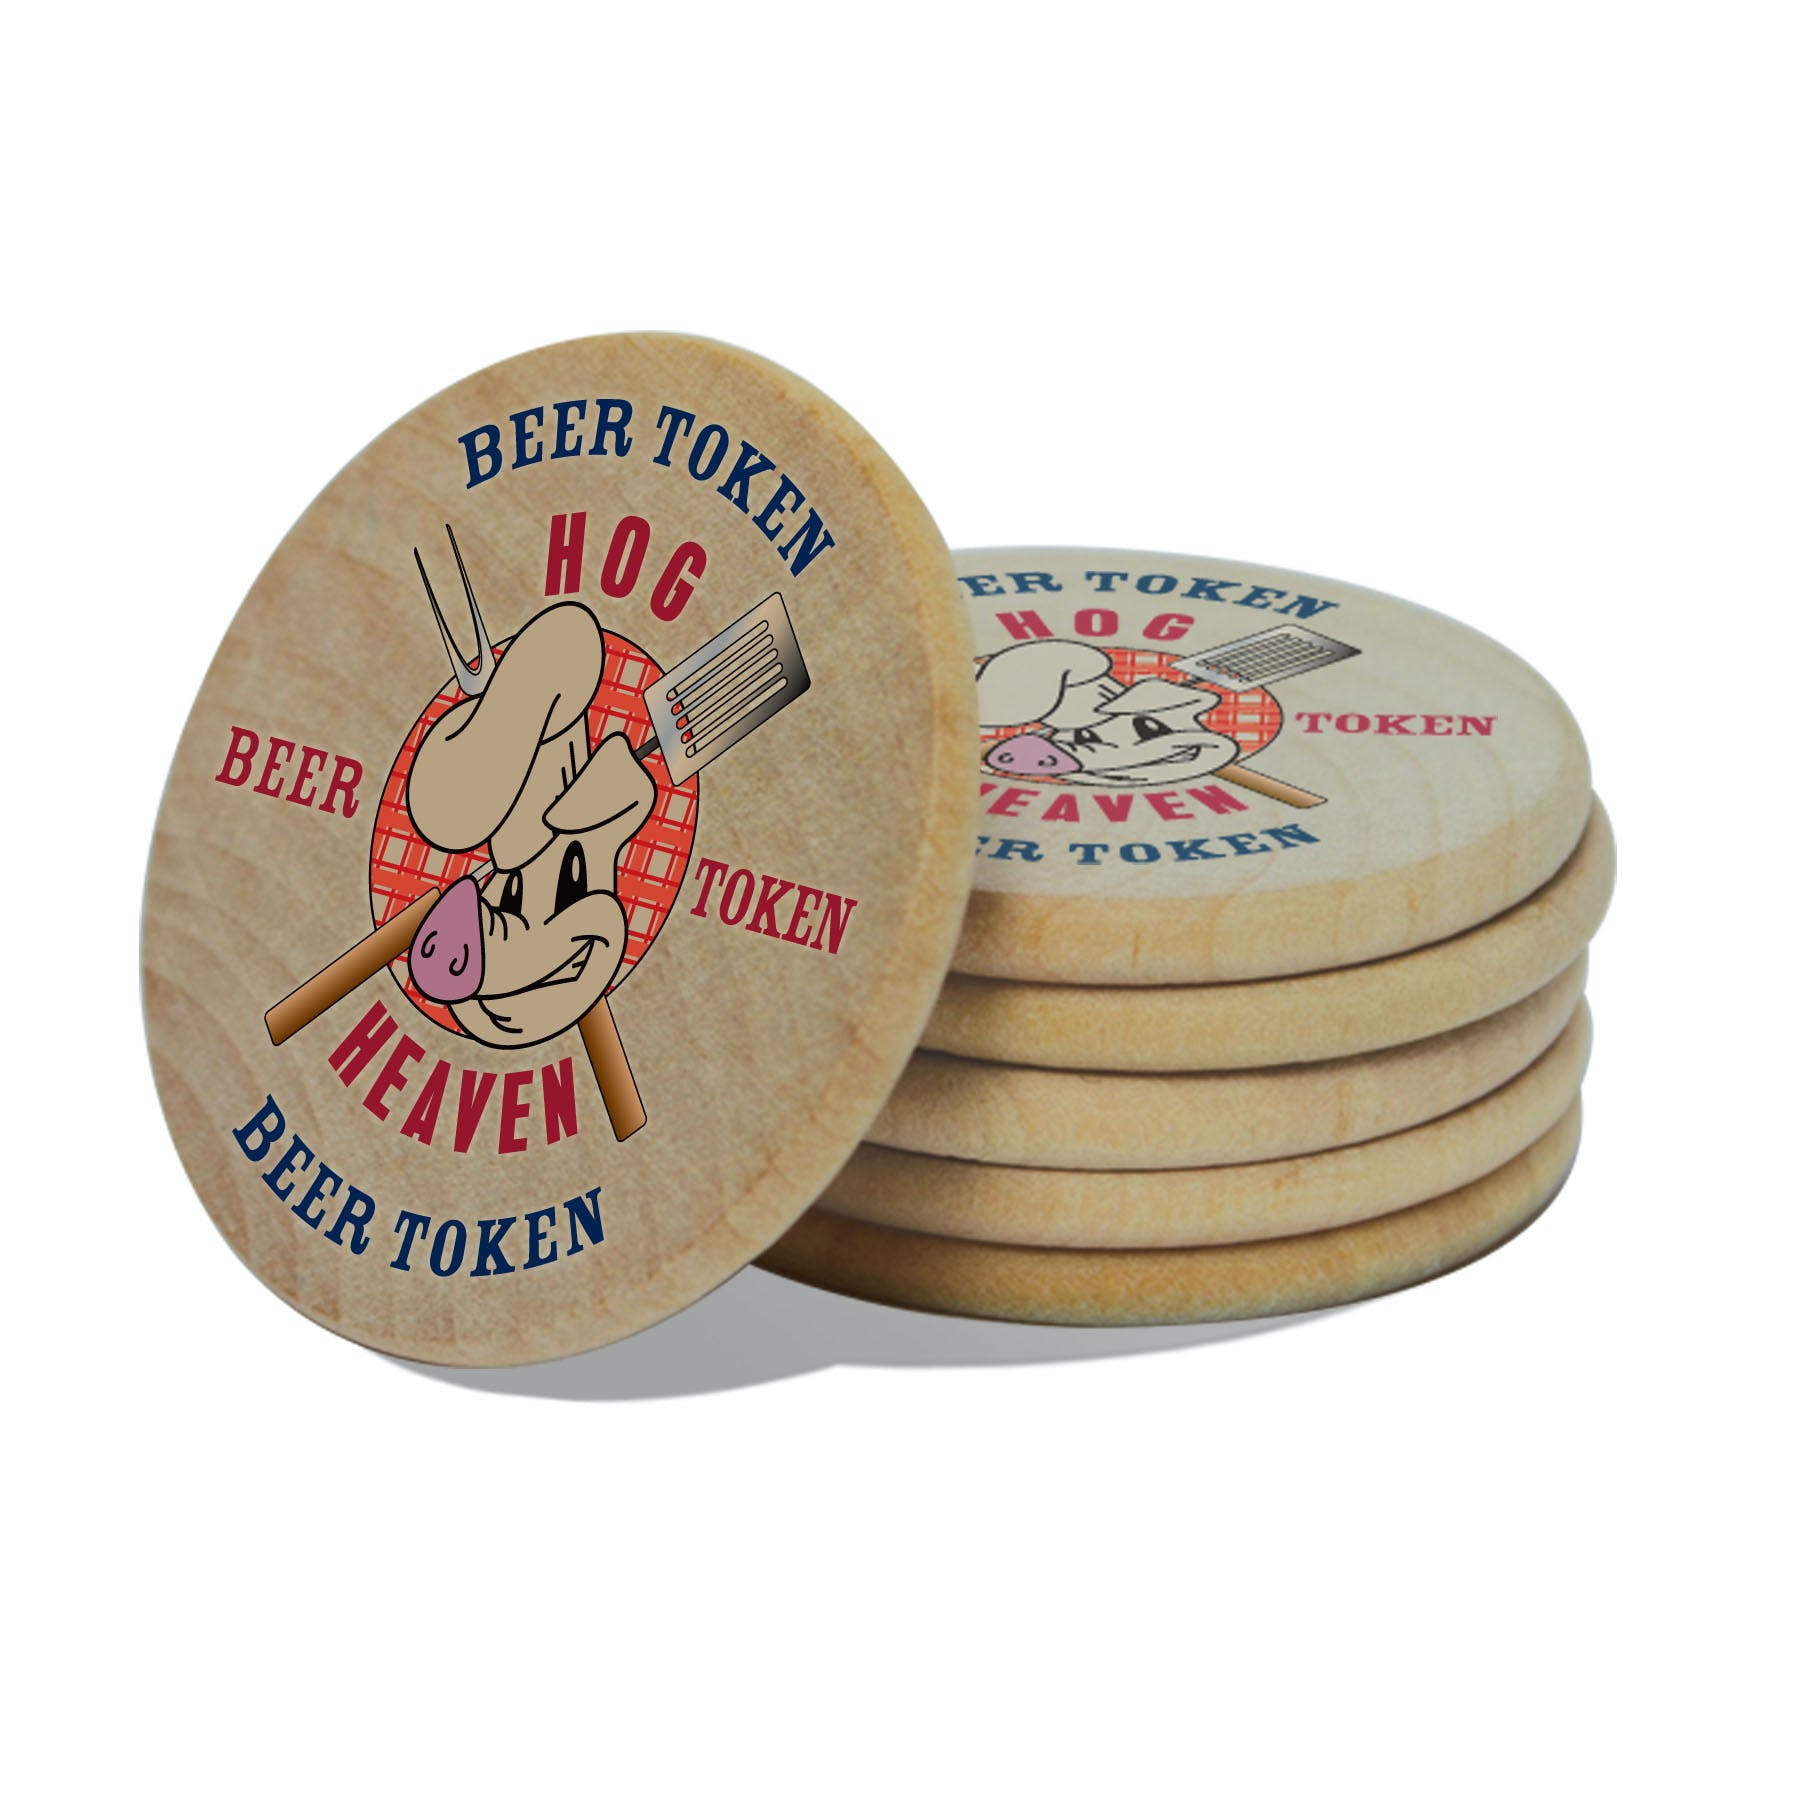 Wooden Token (Item # MHJIP-KAEEQ) Promotional token sold by InkEasy